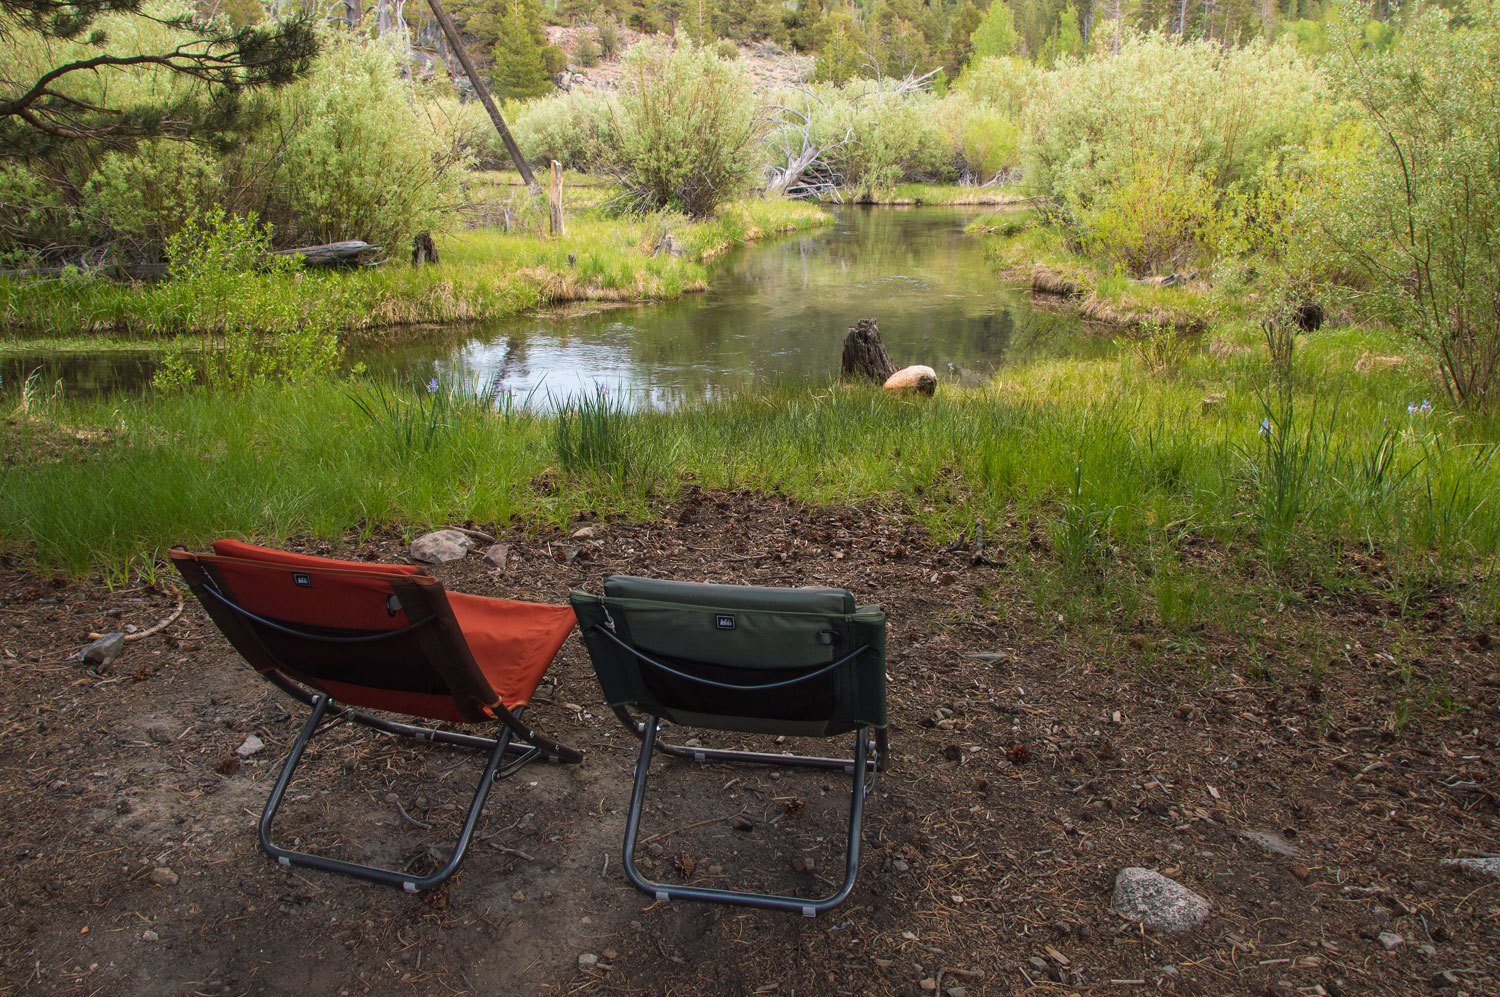 Explorations with the Ski3pins: Hoover Wilderness - June 2014